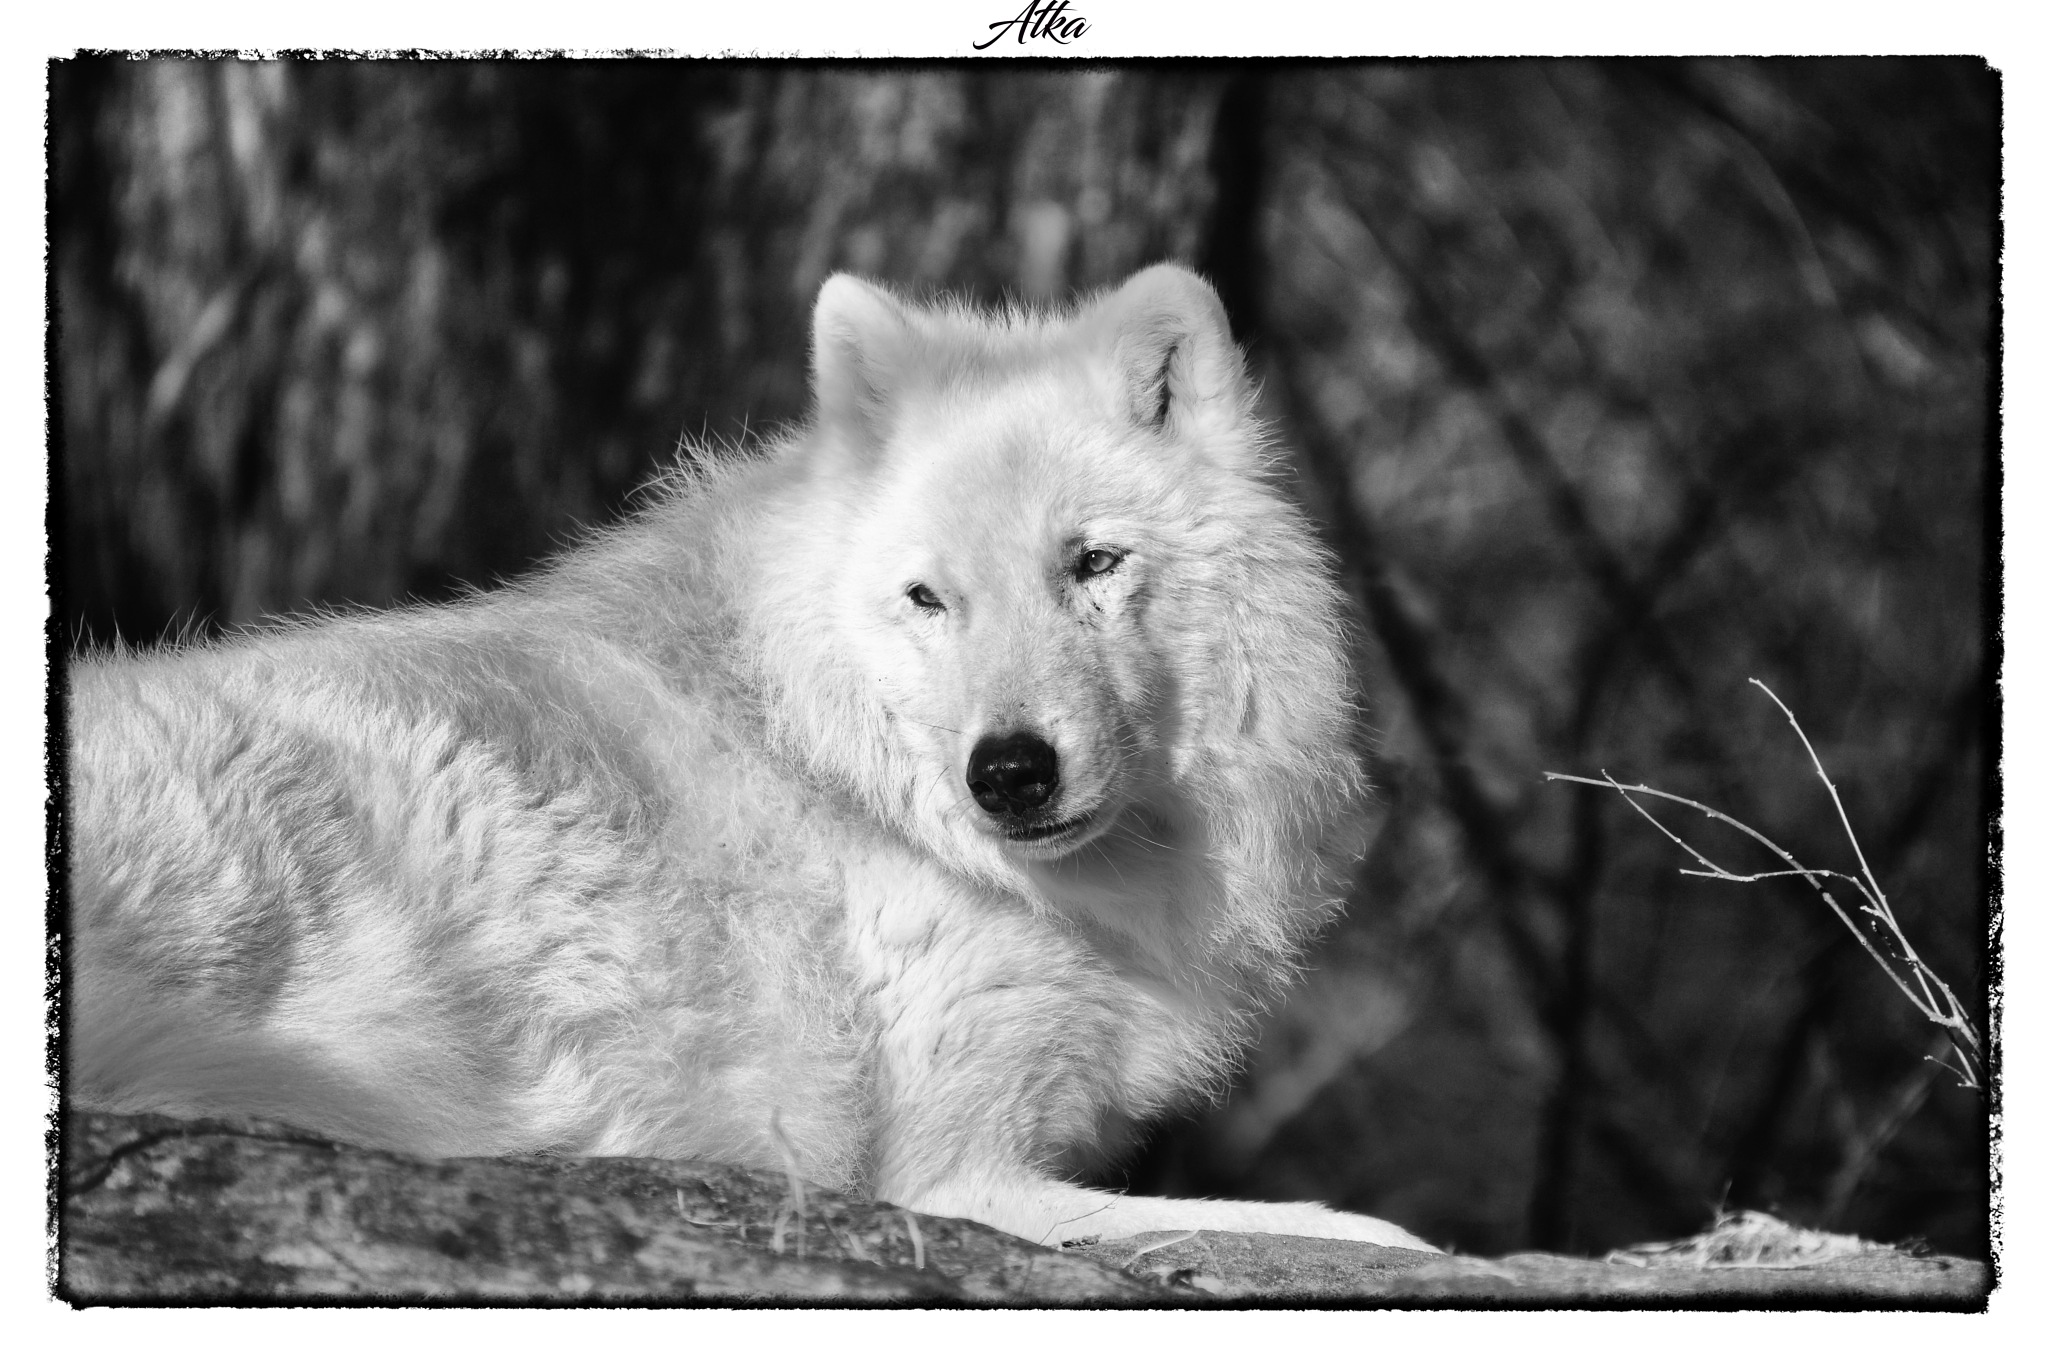 Atka  by RichardABusch